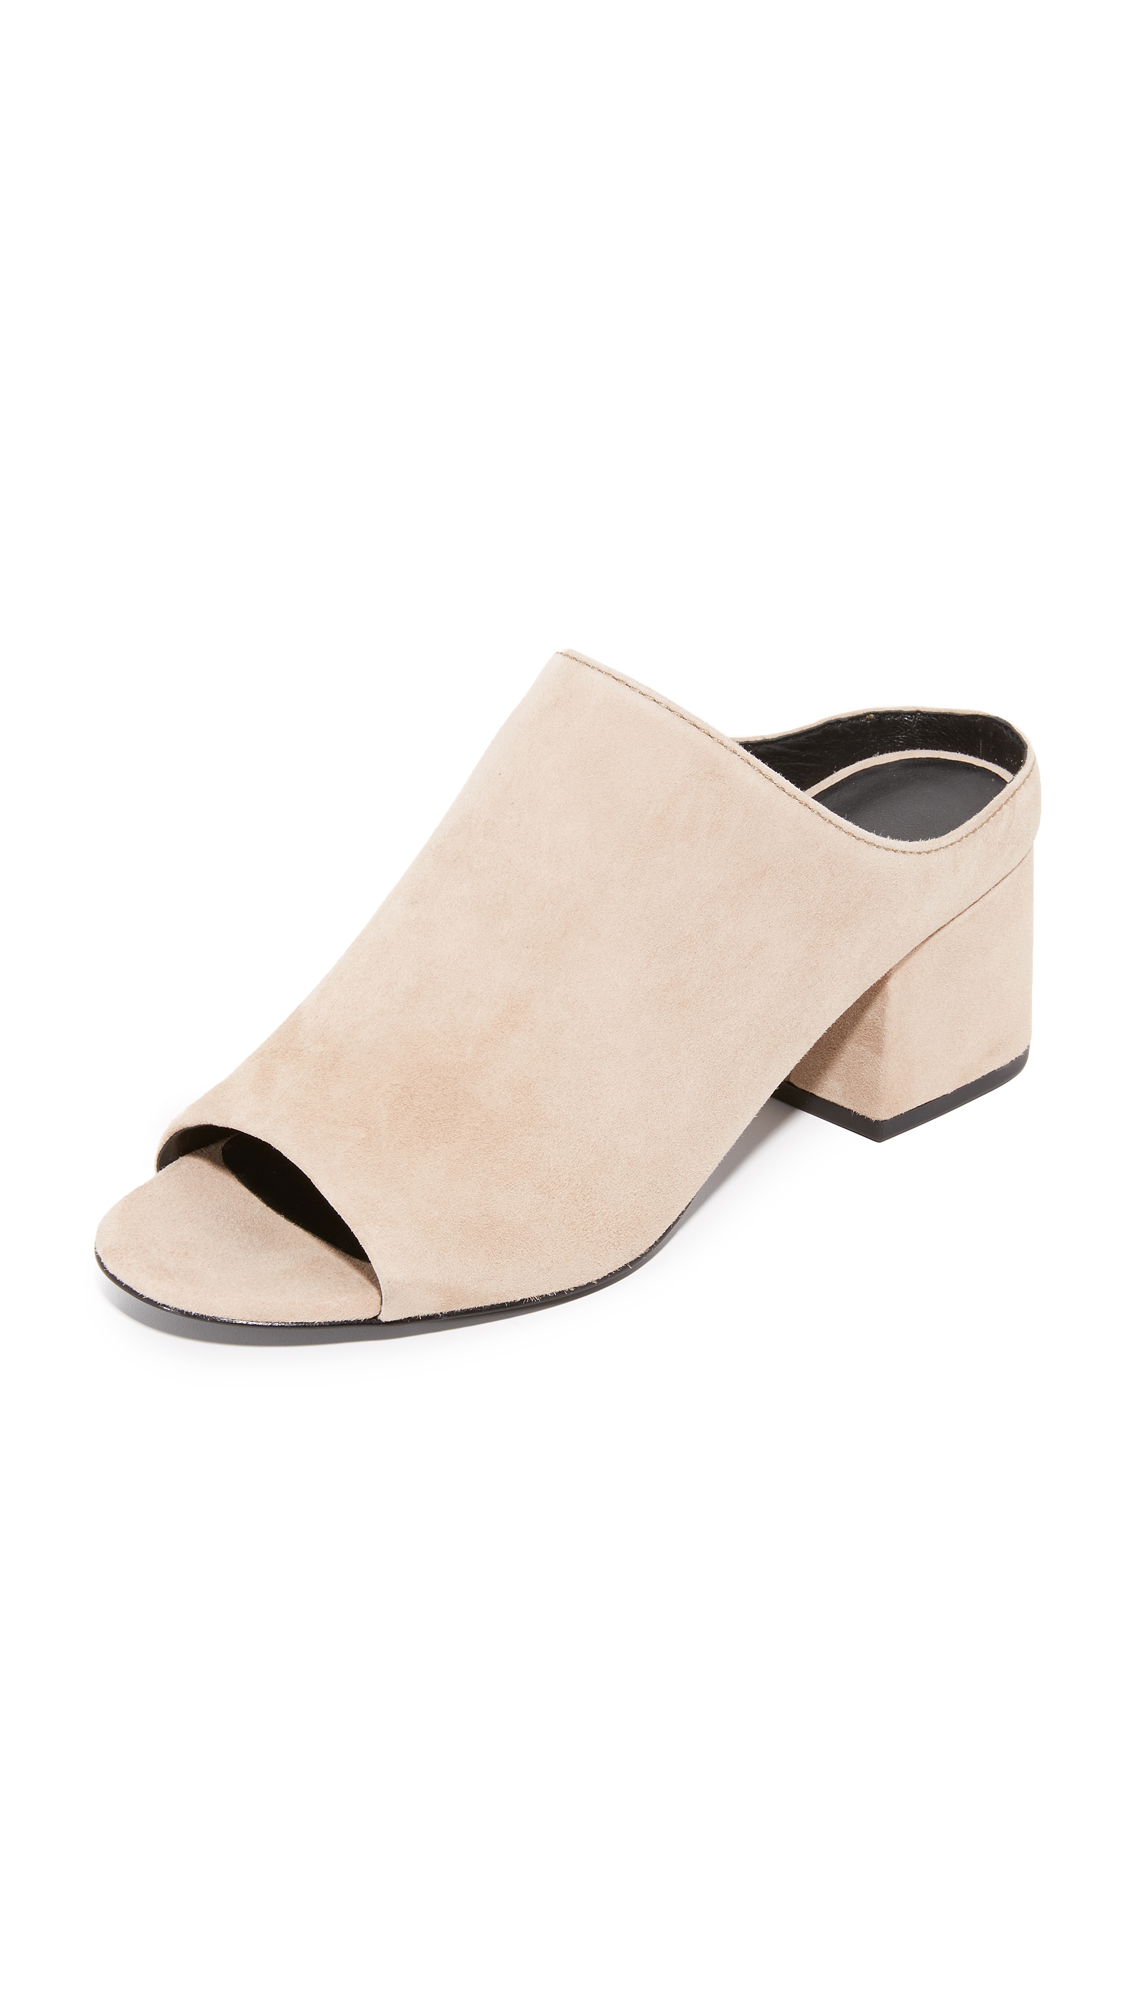 3.1 Phillip Lim Cube Open Toe Mules - Fawn at Shopbop